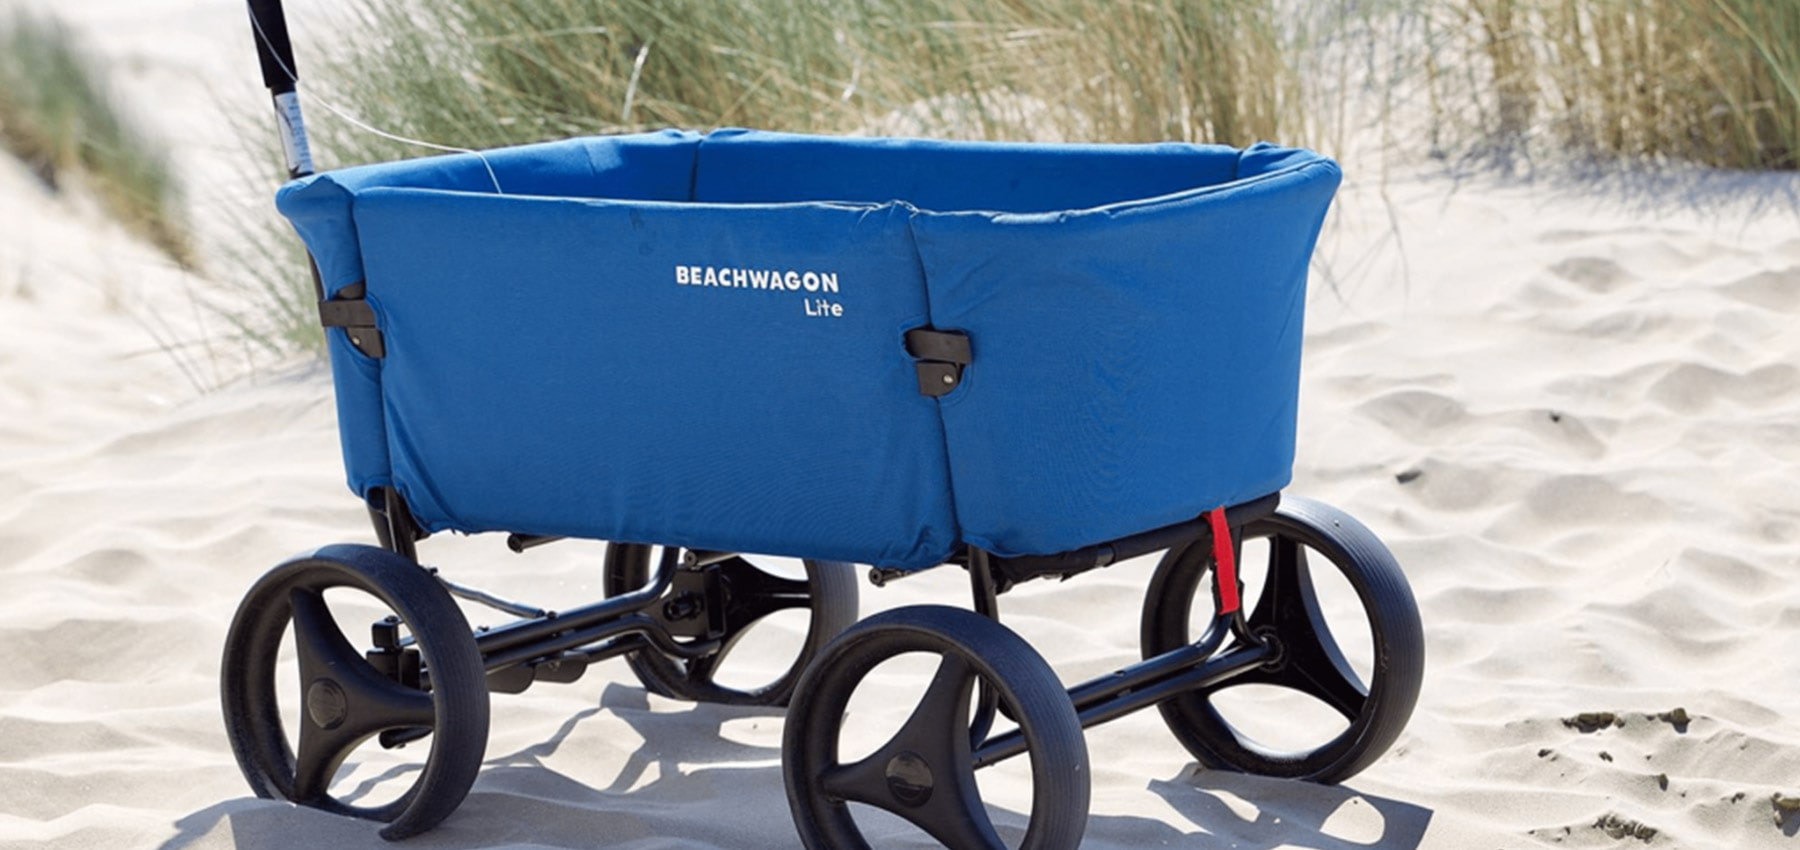 Beachwagon lite